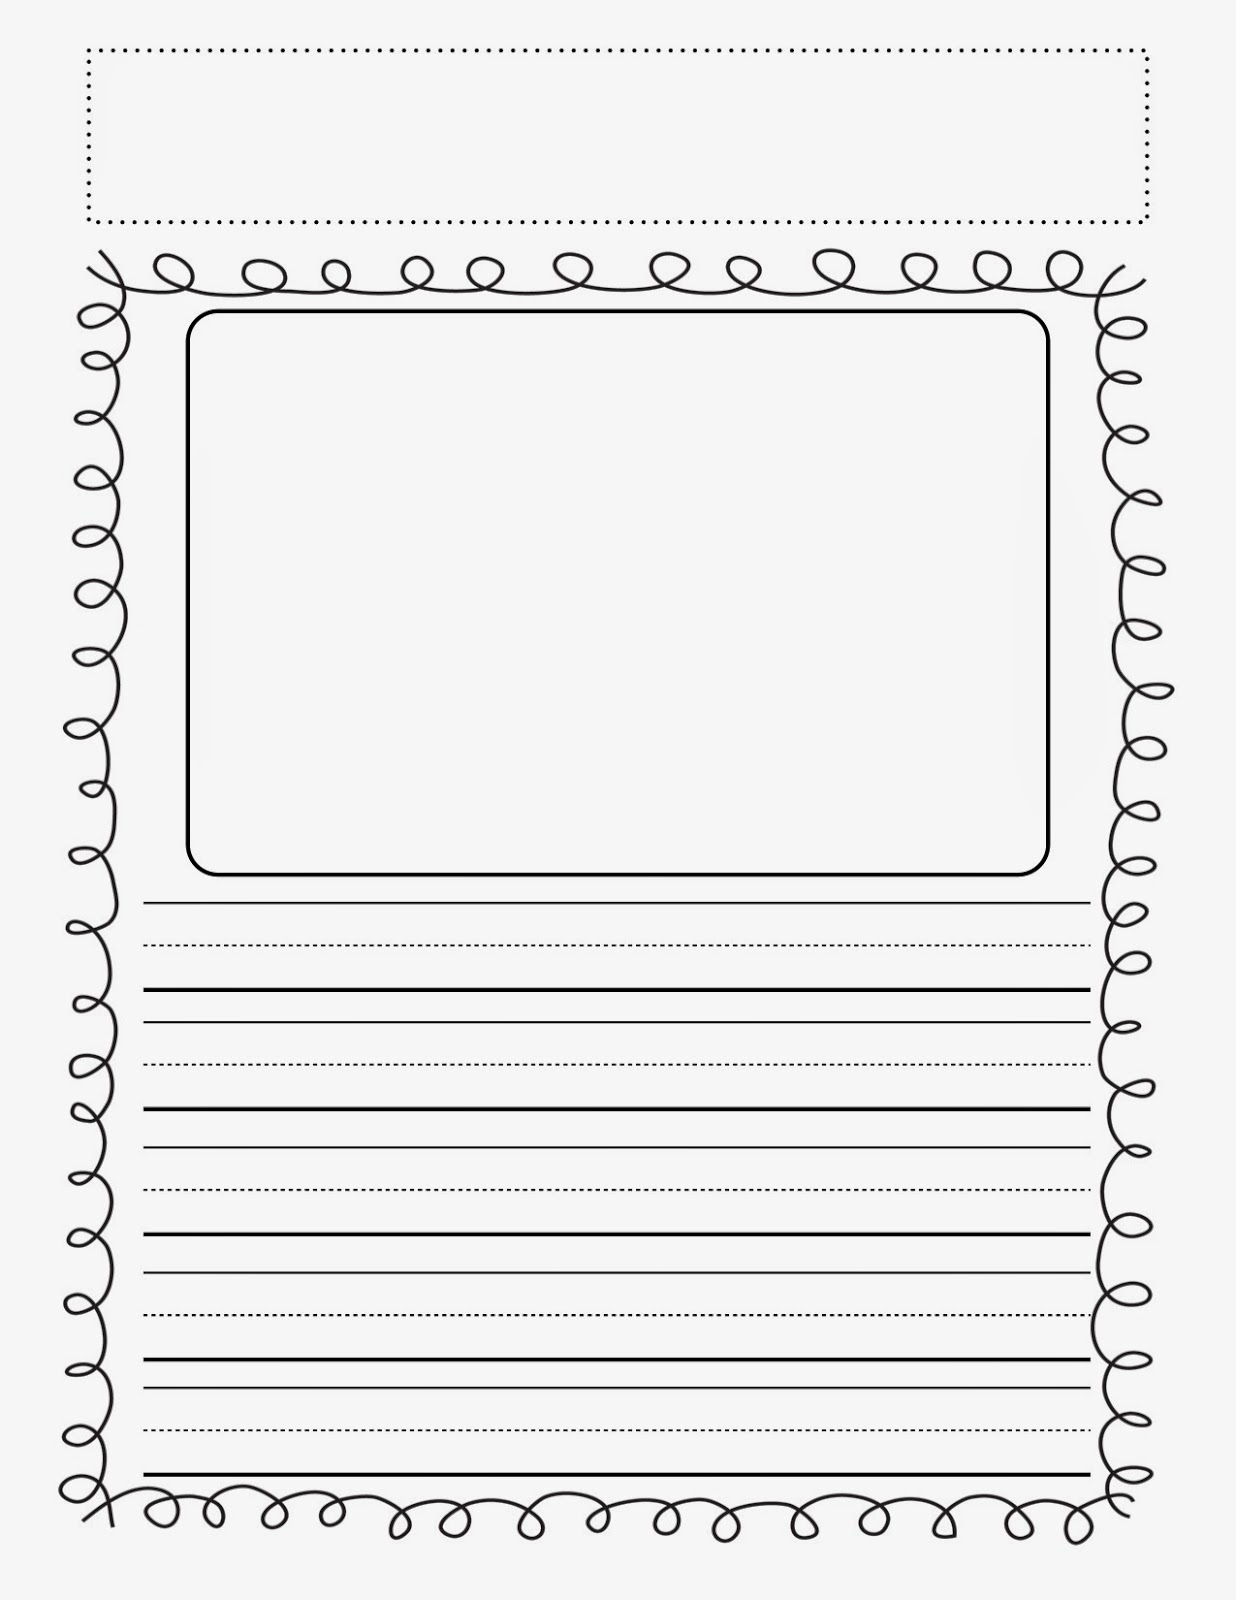 Lined Paper For Kids With Drawing Box